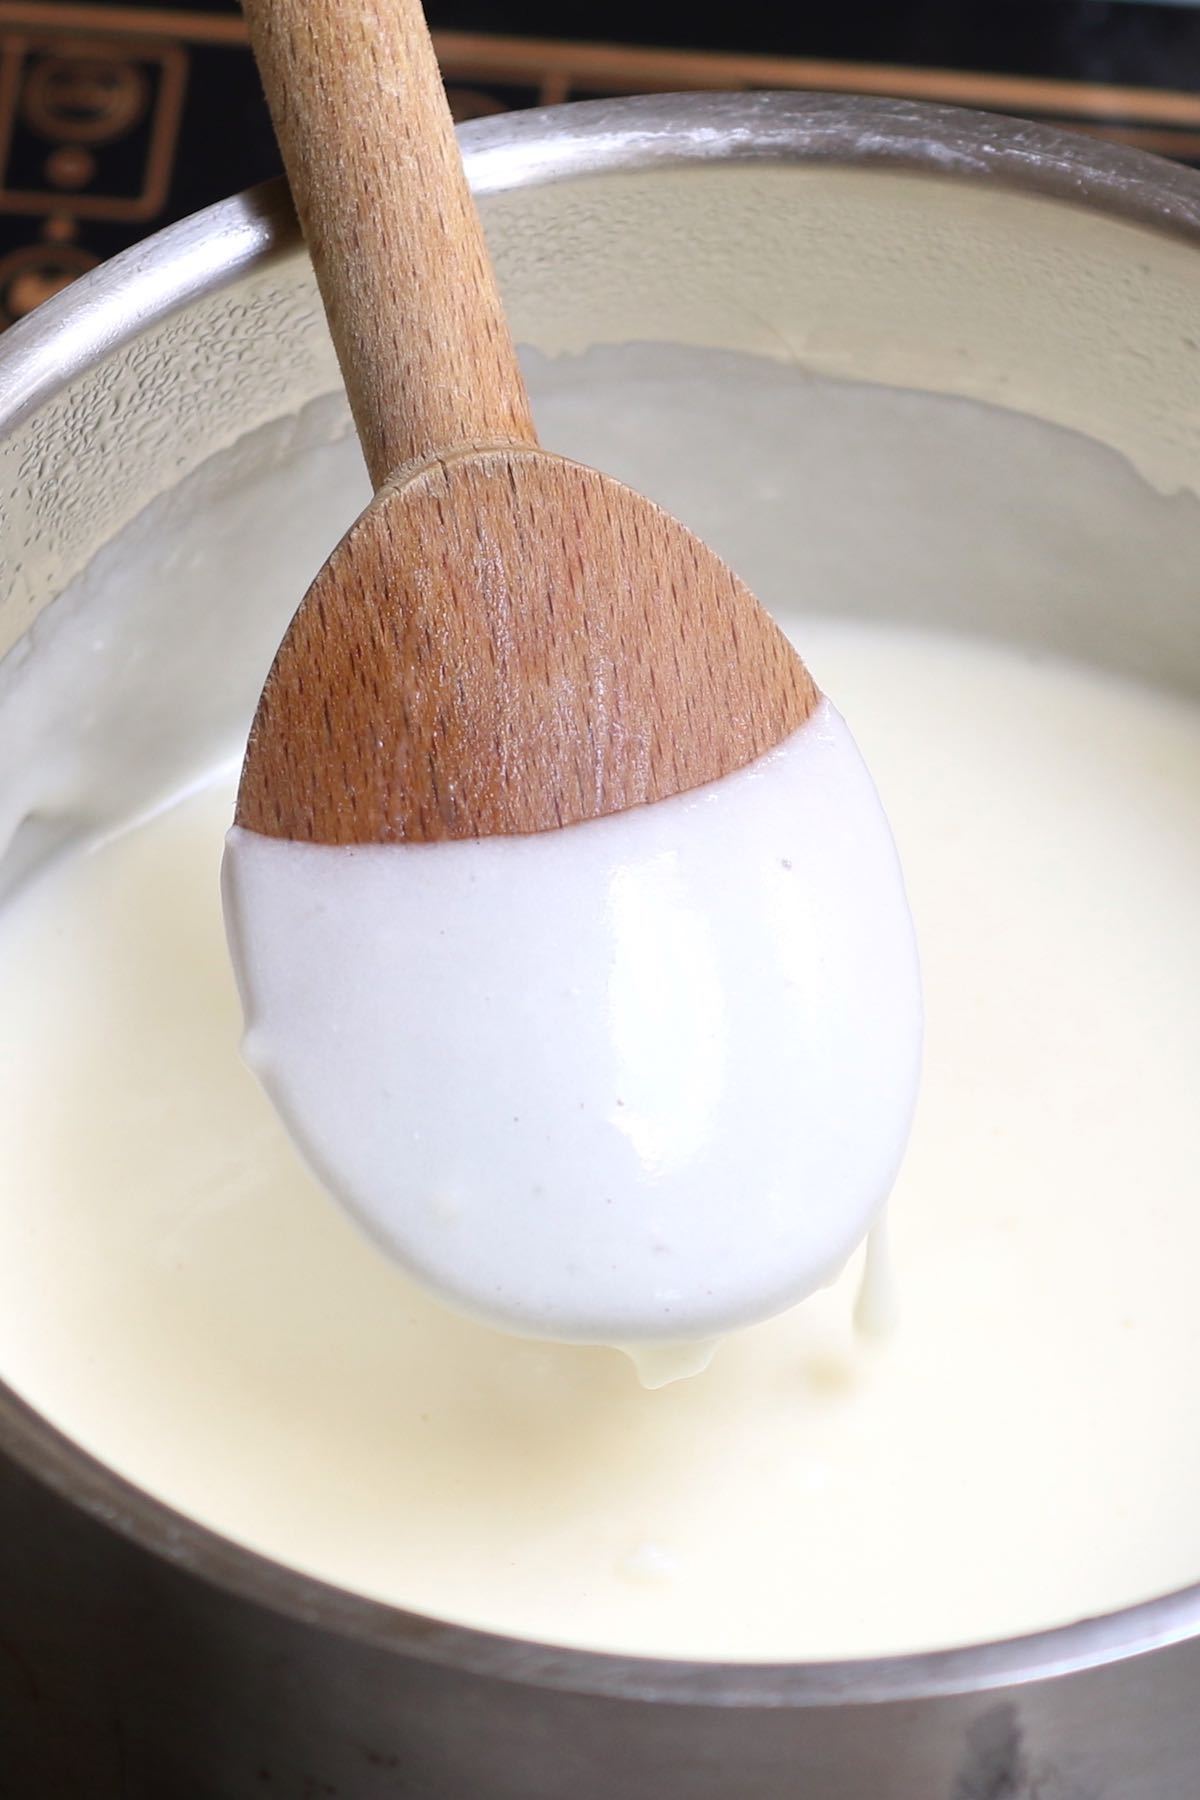 Bechamel sauce coating the back of a wooden spoon once thickened